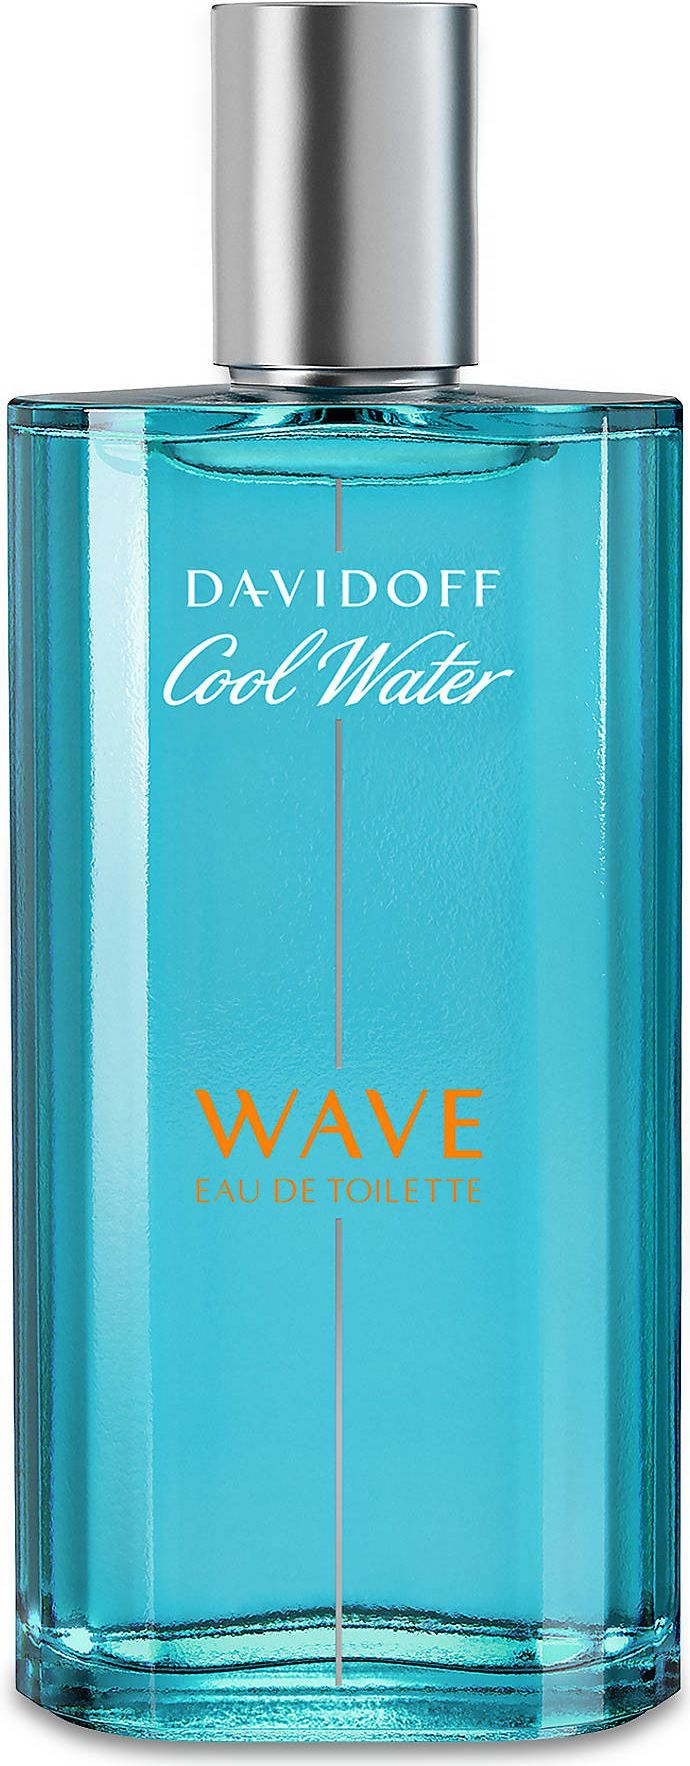 Davidoff Cool Water Wave EDT 125ml 1